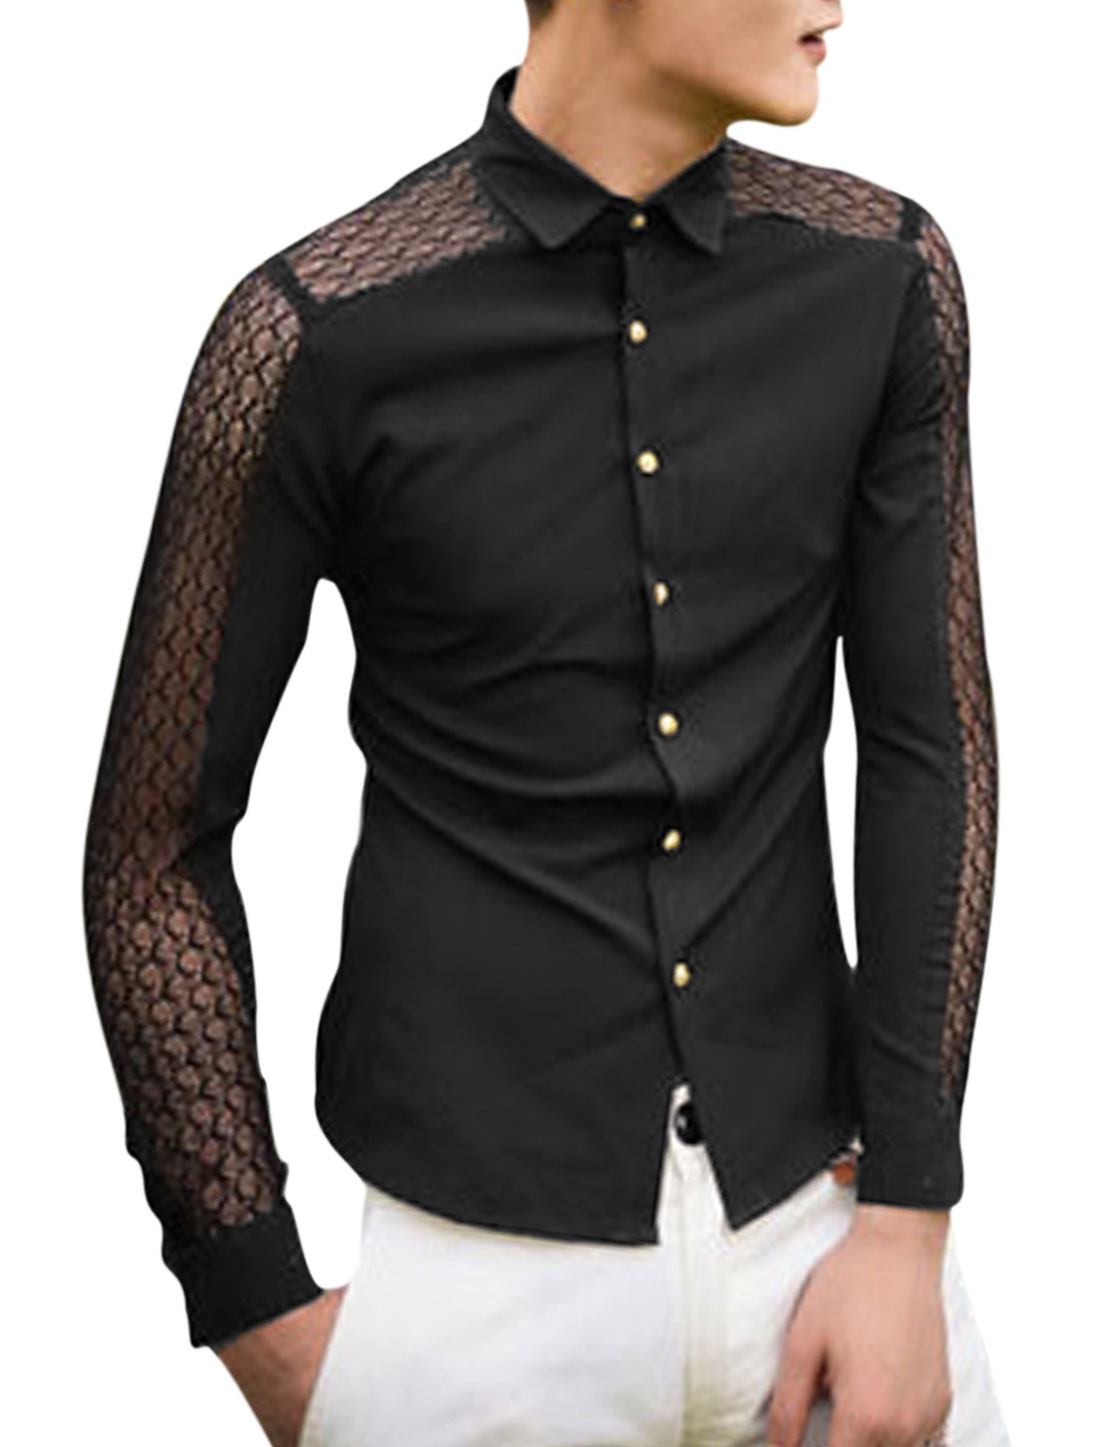 Single Breasted Long Sleeves Black Casual Shirt for Man S